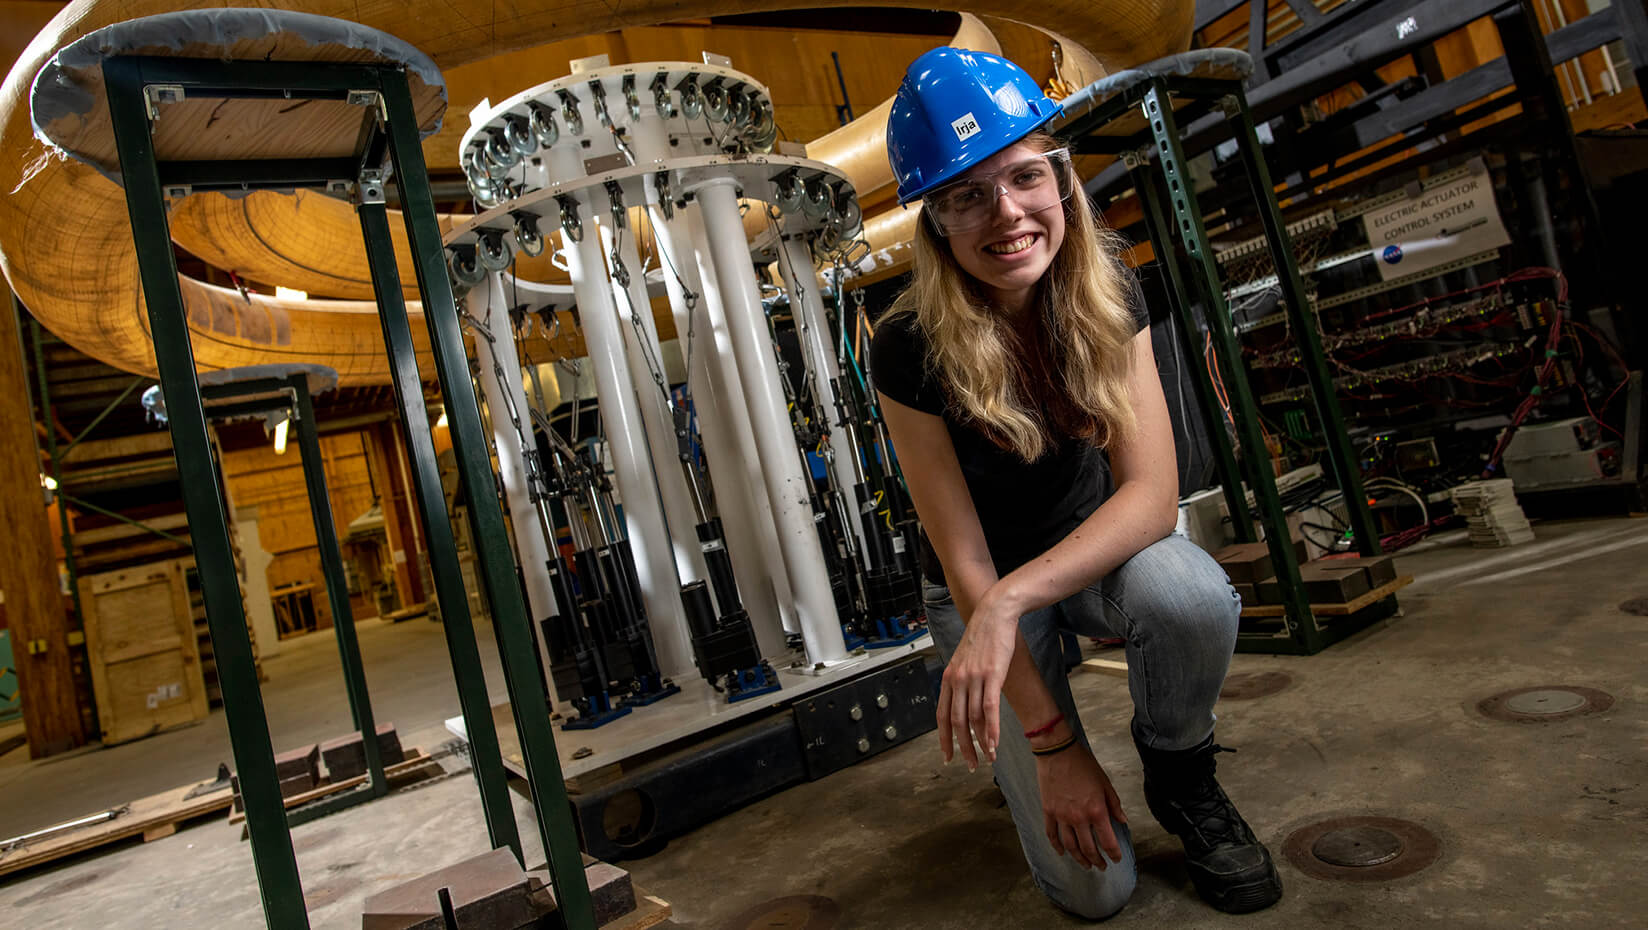 featured image for Irja Hepler: Early College leads to hands-on engineering at ASCC